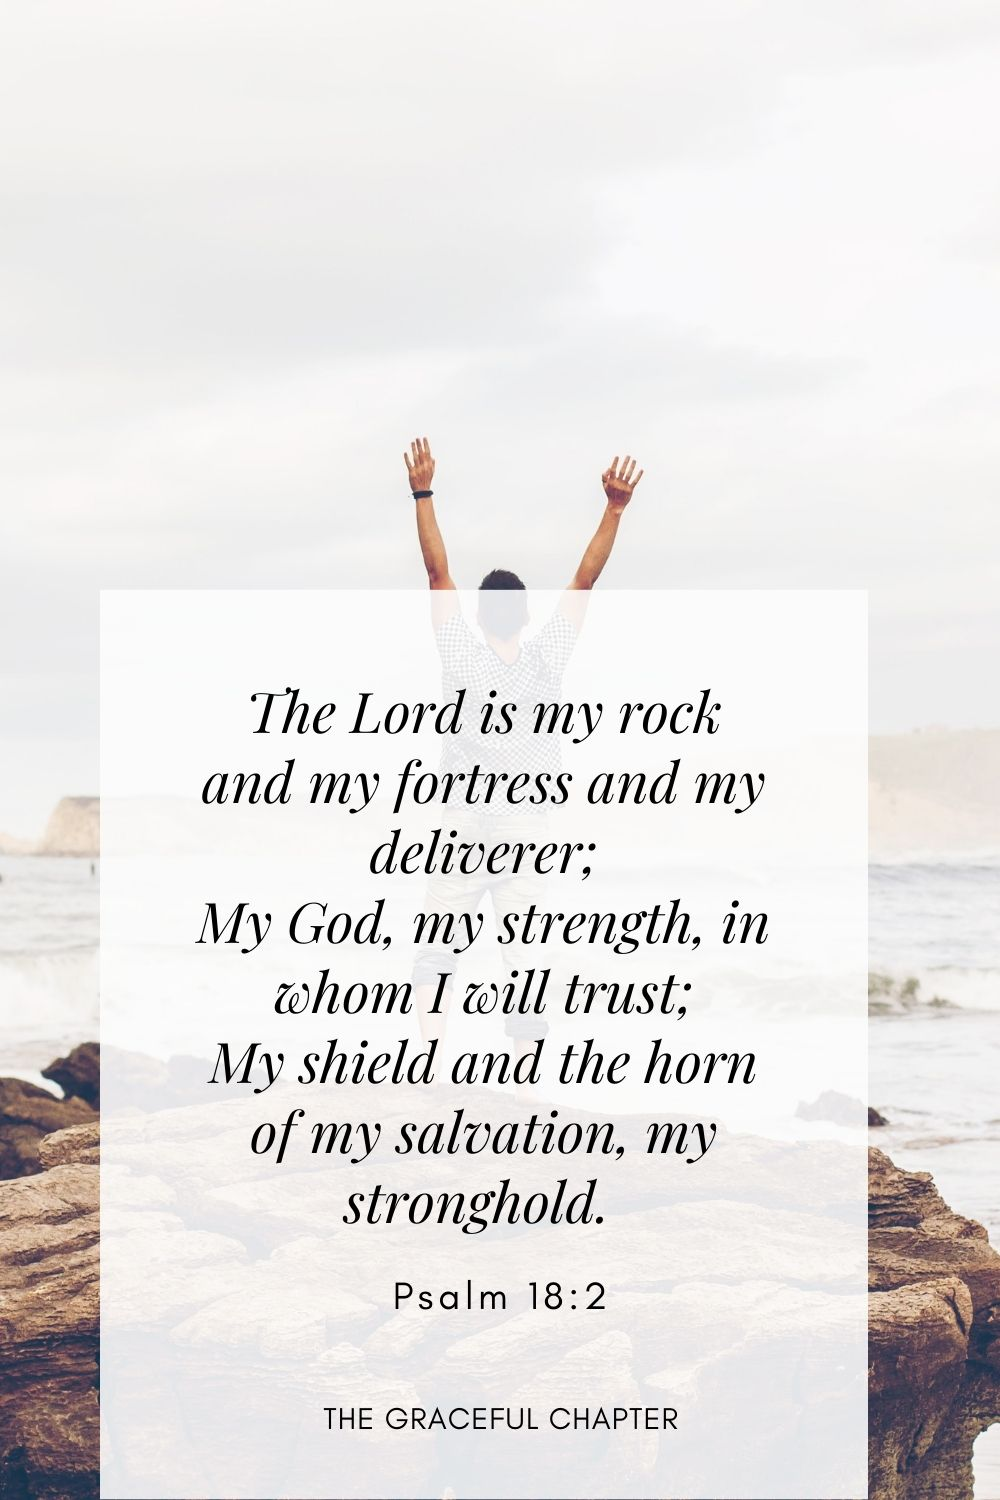 The Lord is my rock and my fortress and my deliverer; My God, my strength, in whom I will trust; My shield and the horn of my salvation, my stronghold.